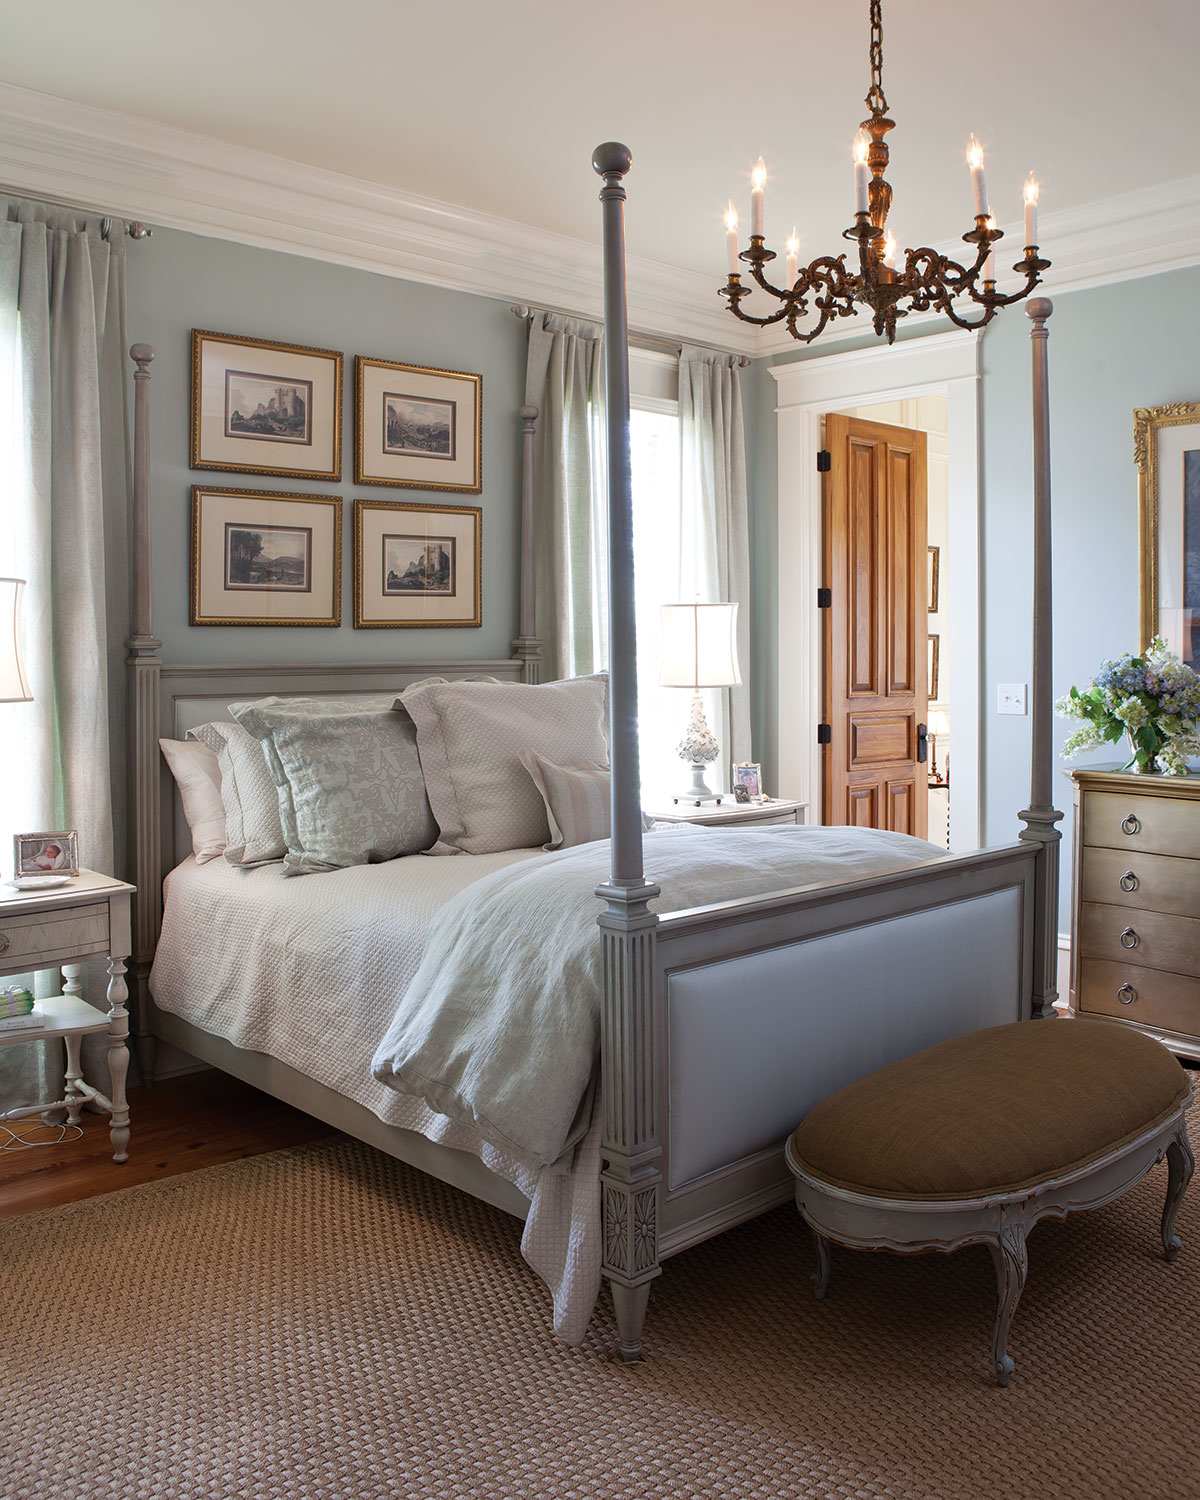 10 dreamy southern bedrooms page 3 of 10 southern lady for Bedroom decor pictures